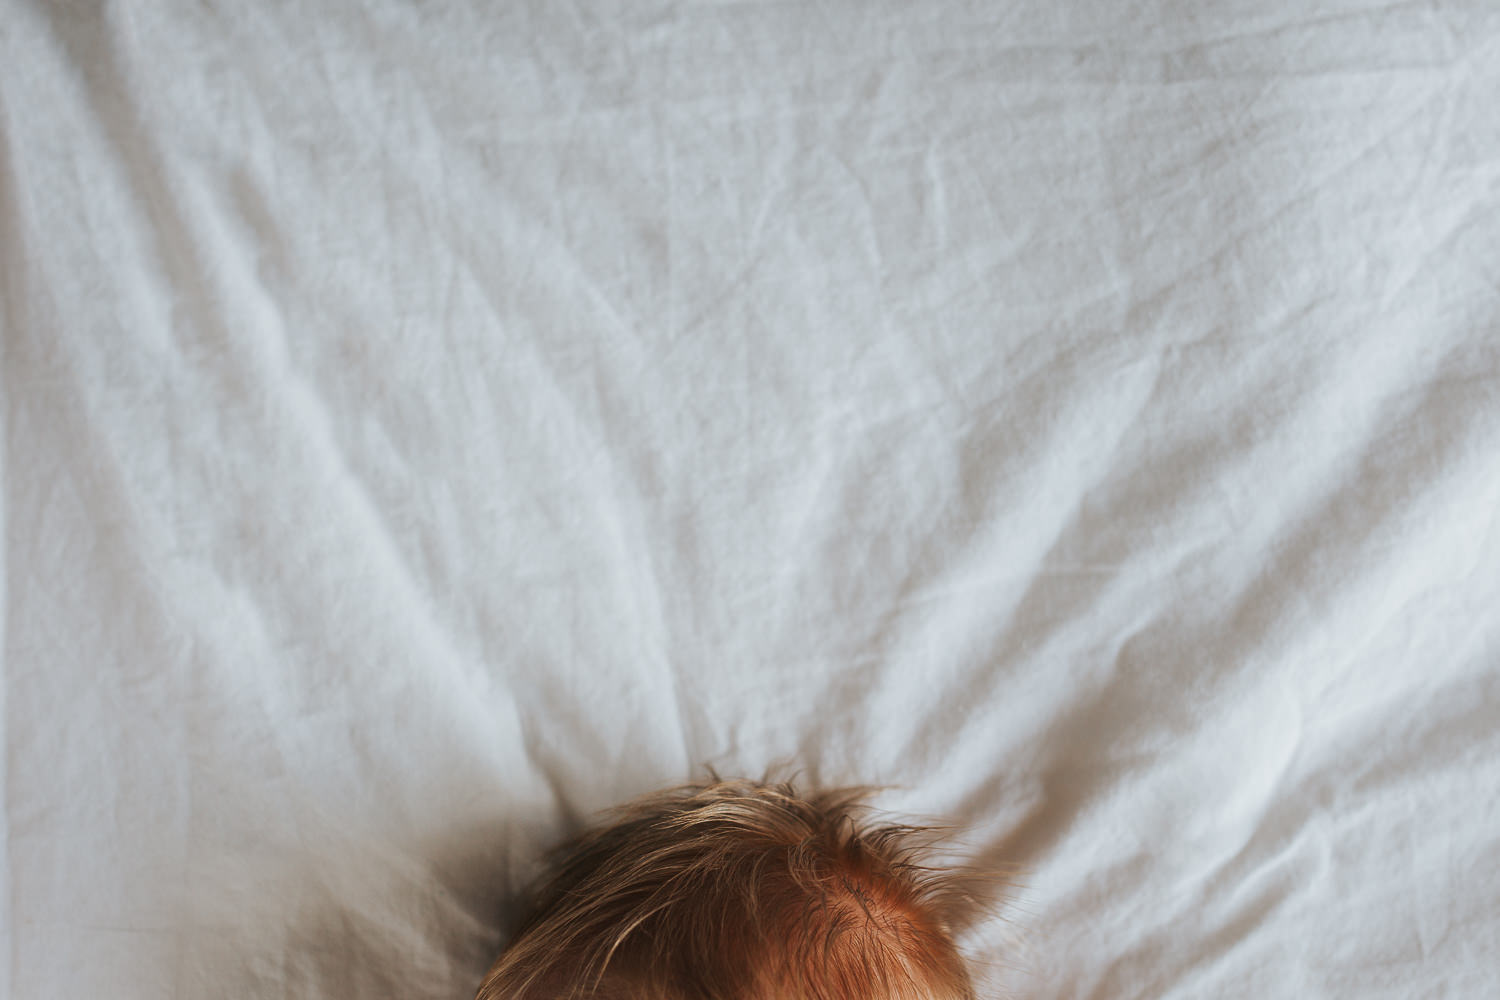 2 week old baby girl asleep on bed, close up of red hair - Stouffville In-Home Photography